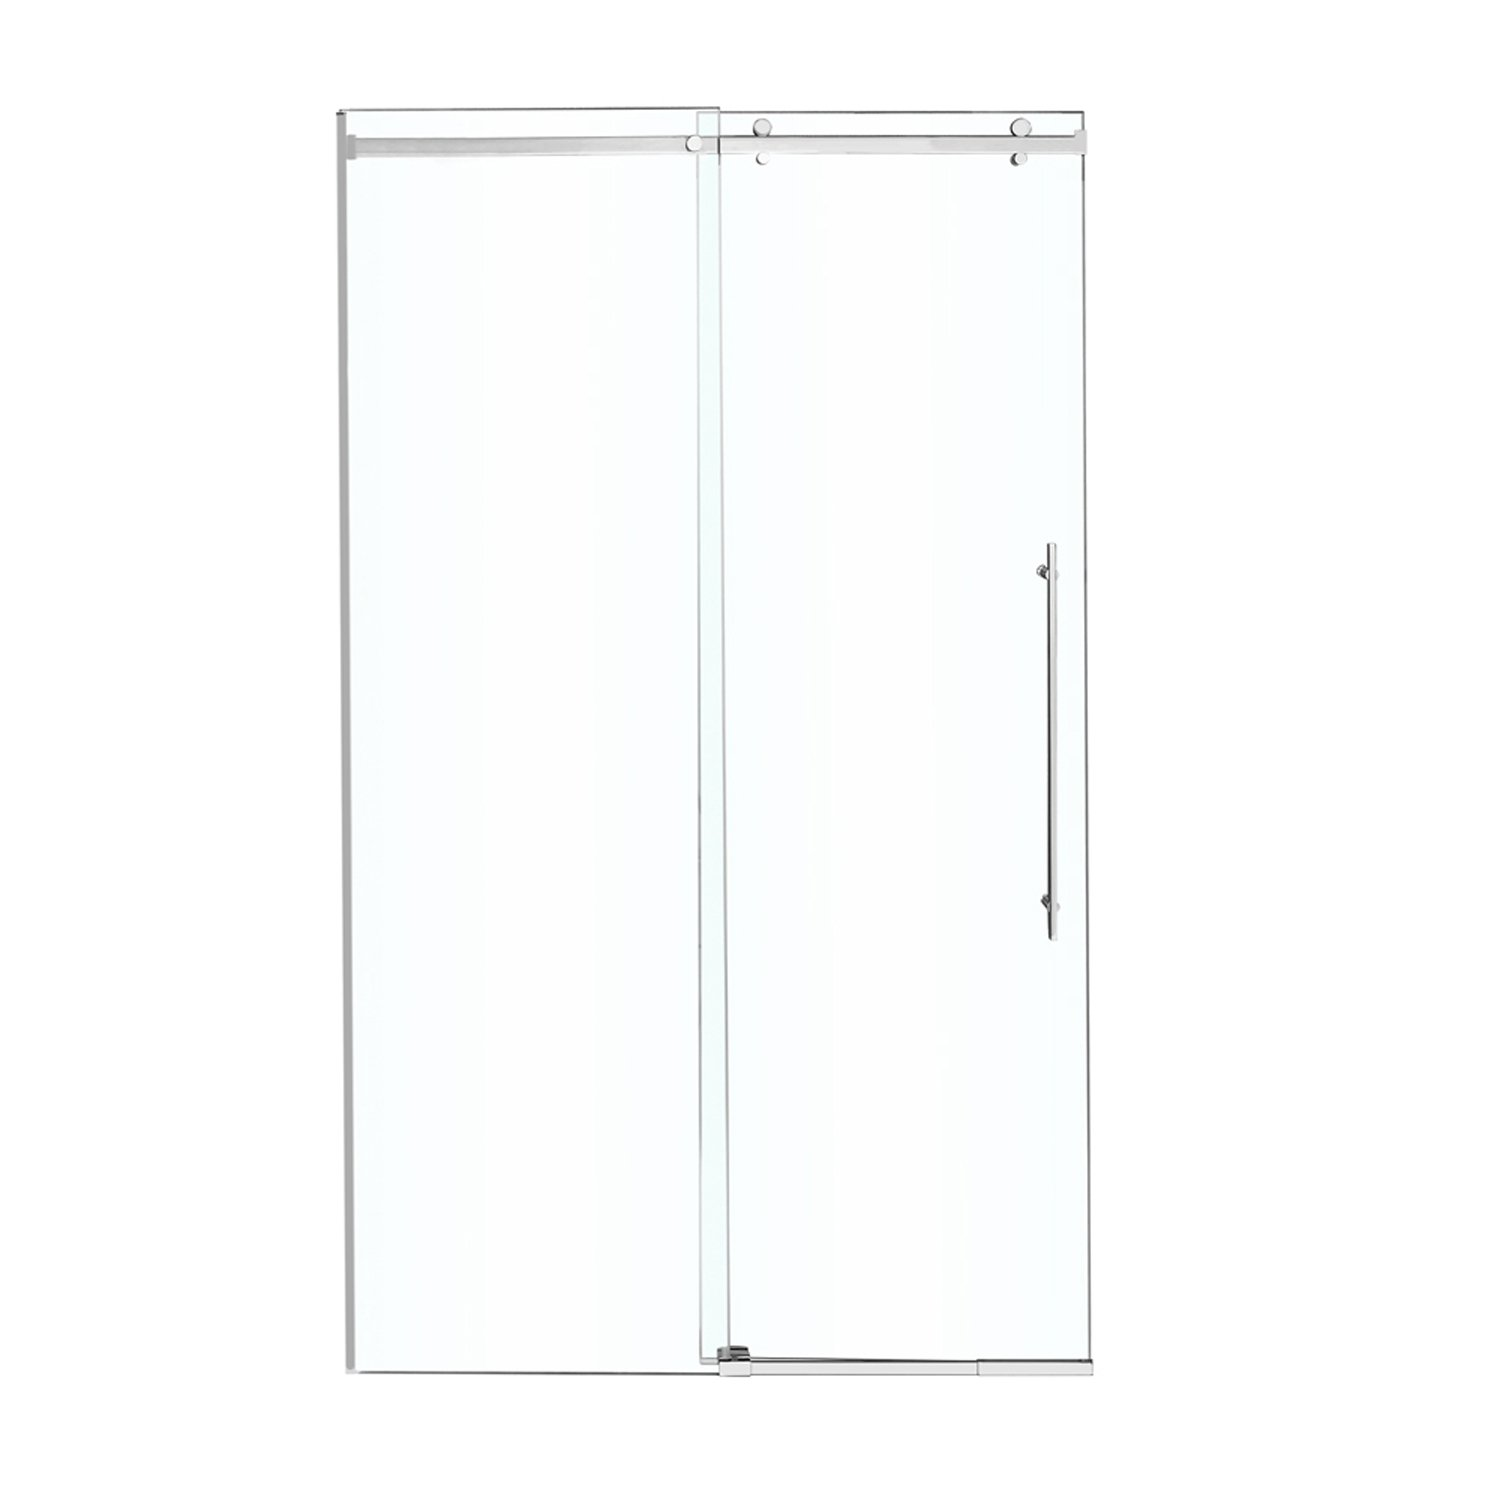 VIGO Luca 56 to 60-in. Frameless Sliding Shower Door with .375-in. Clear Glass and Chrome Hardware by Vigo (Image #8)